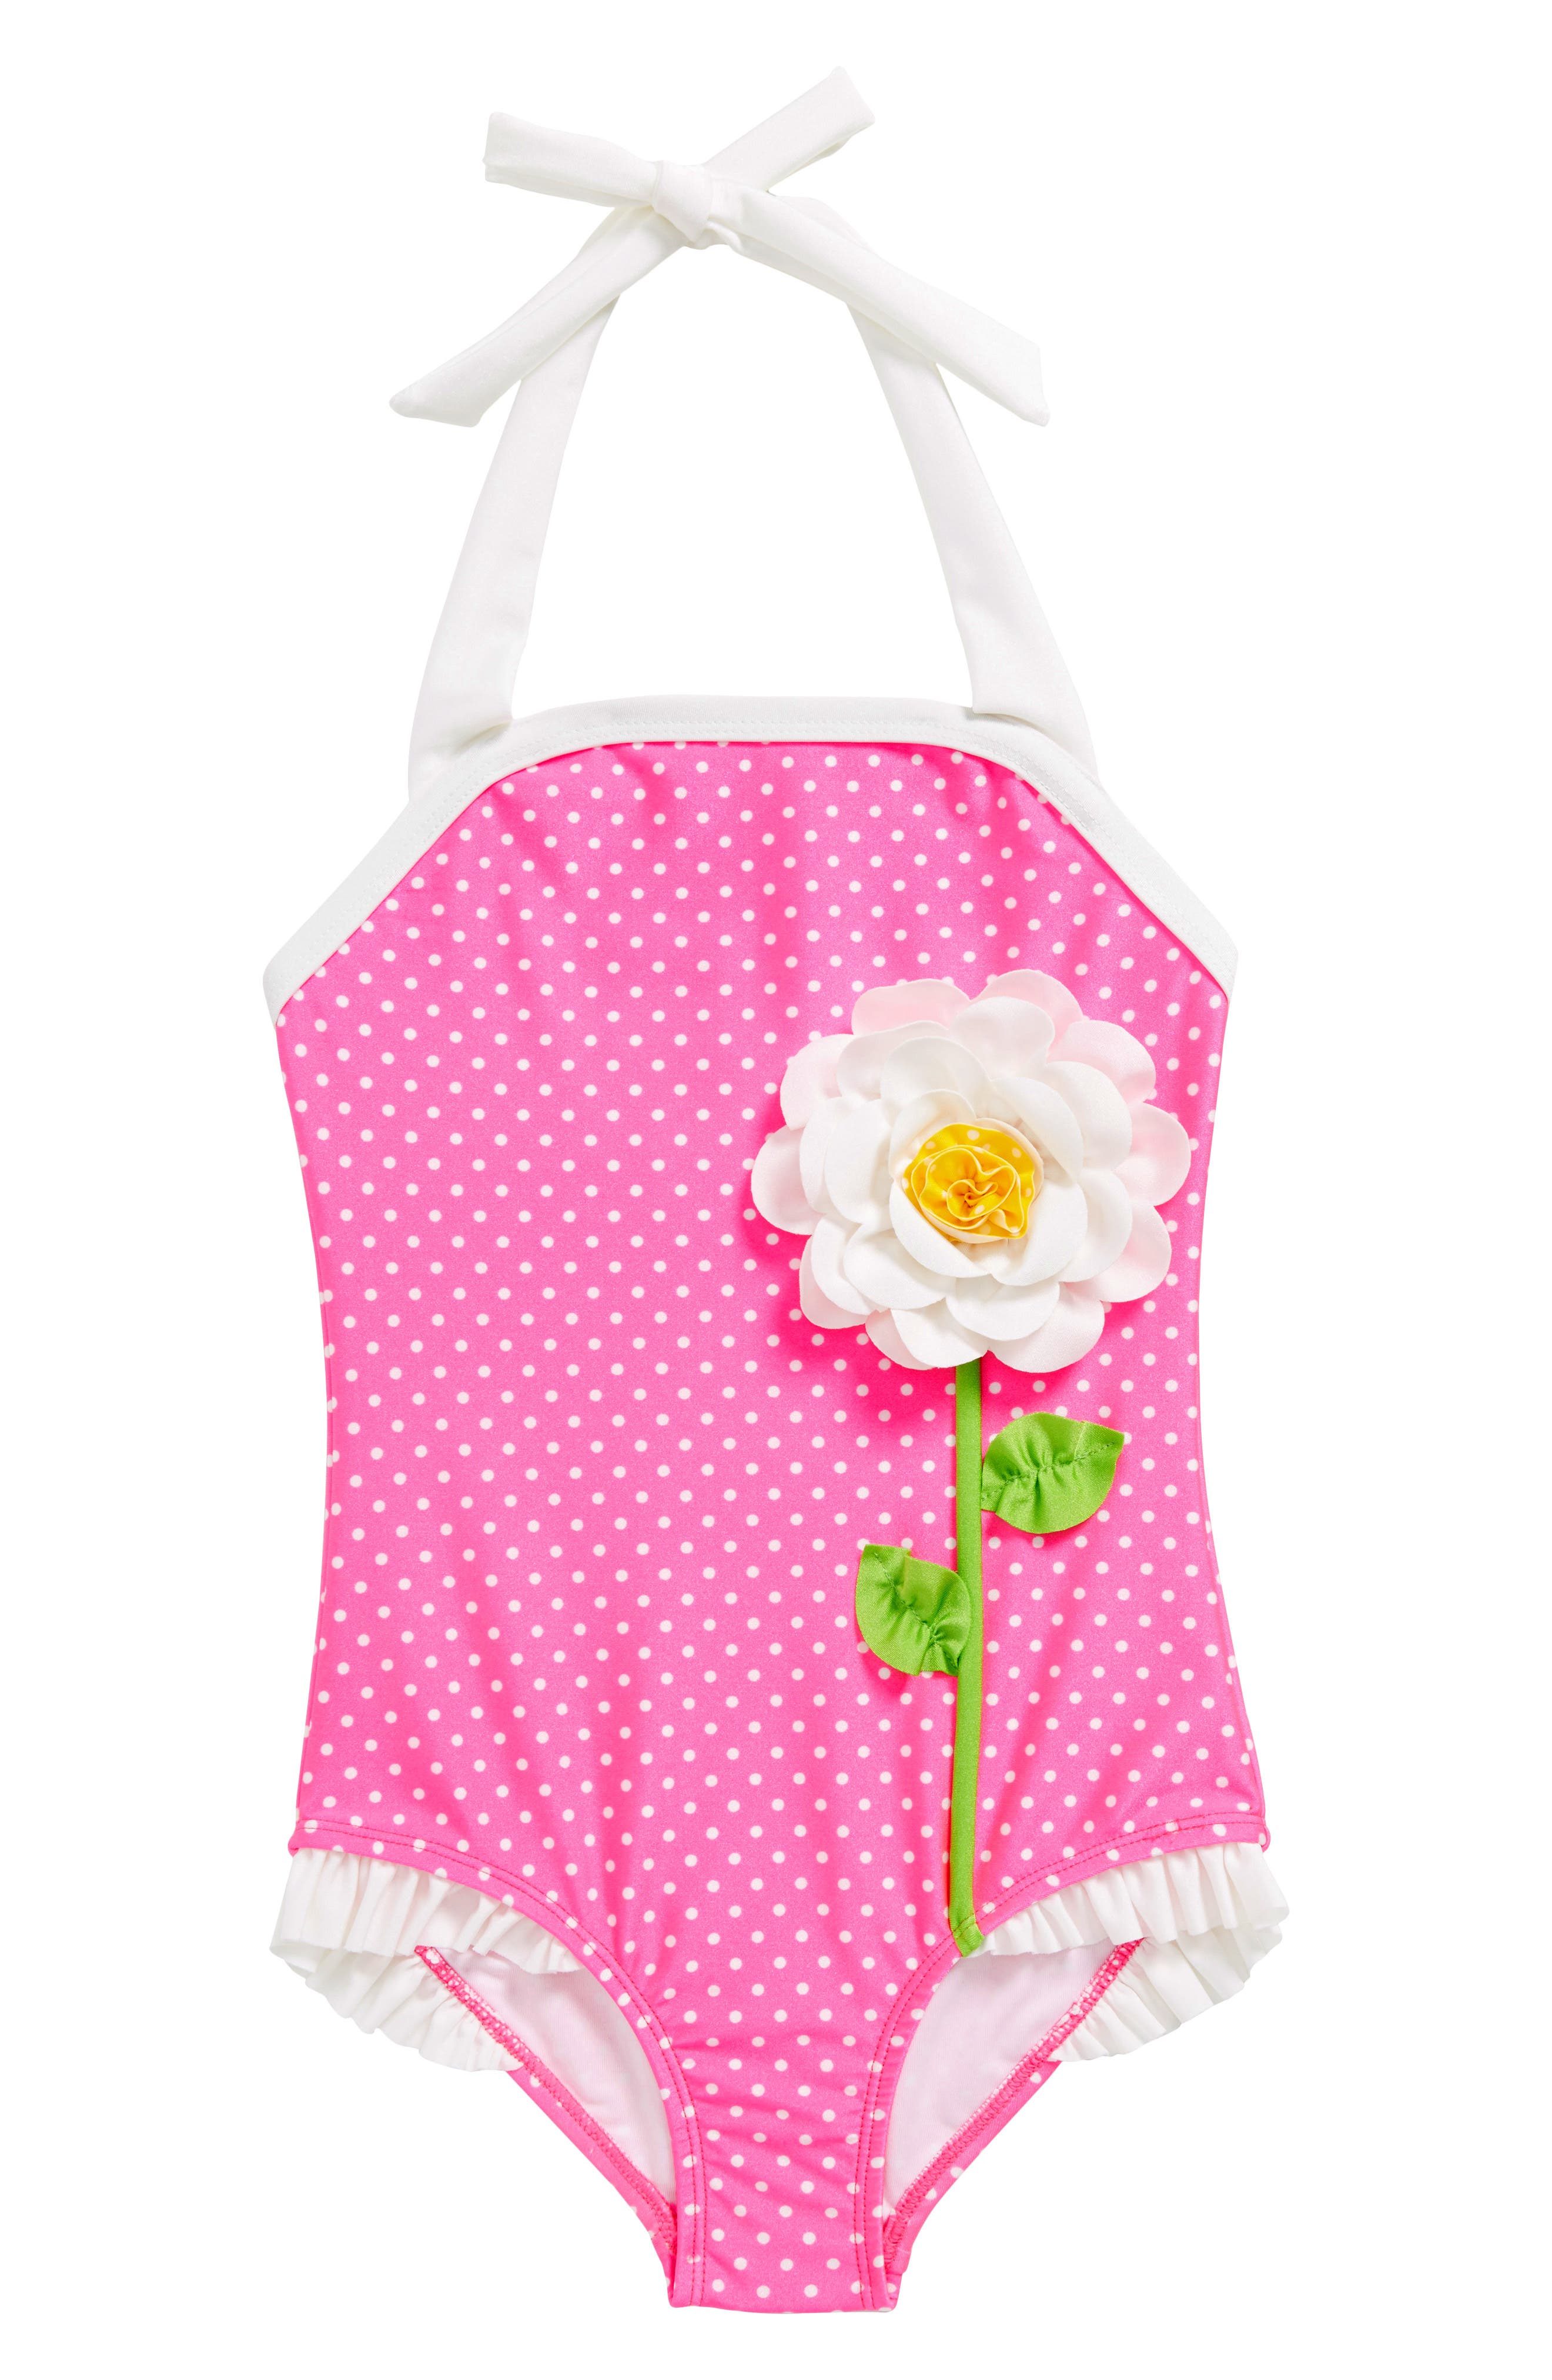 Alternate Image 1 Selected - Love U Lots Dot Print One-Piece Halter Swimsuit (Toddler Girls & Little Girls)